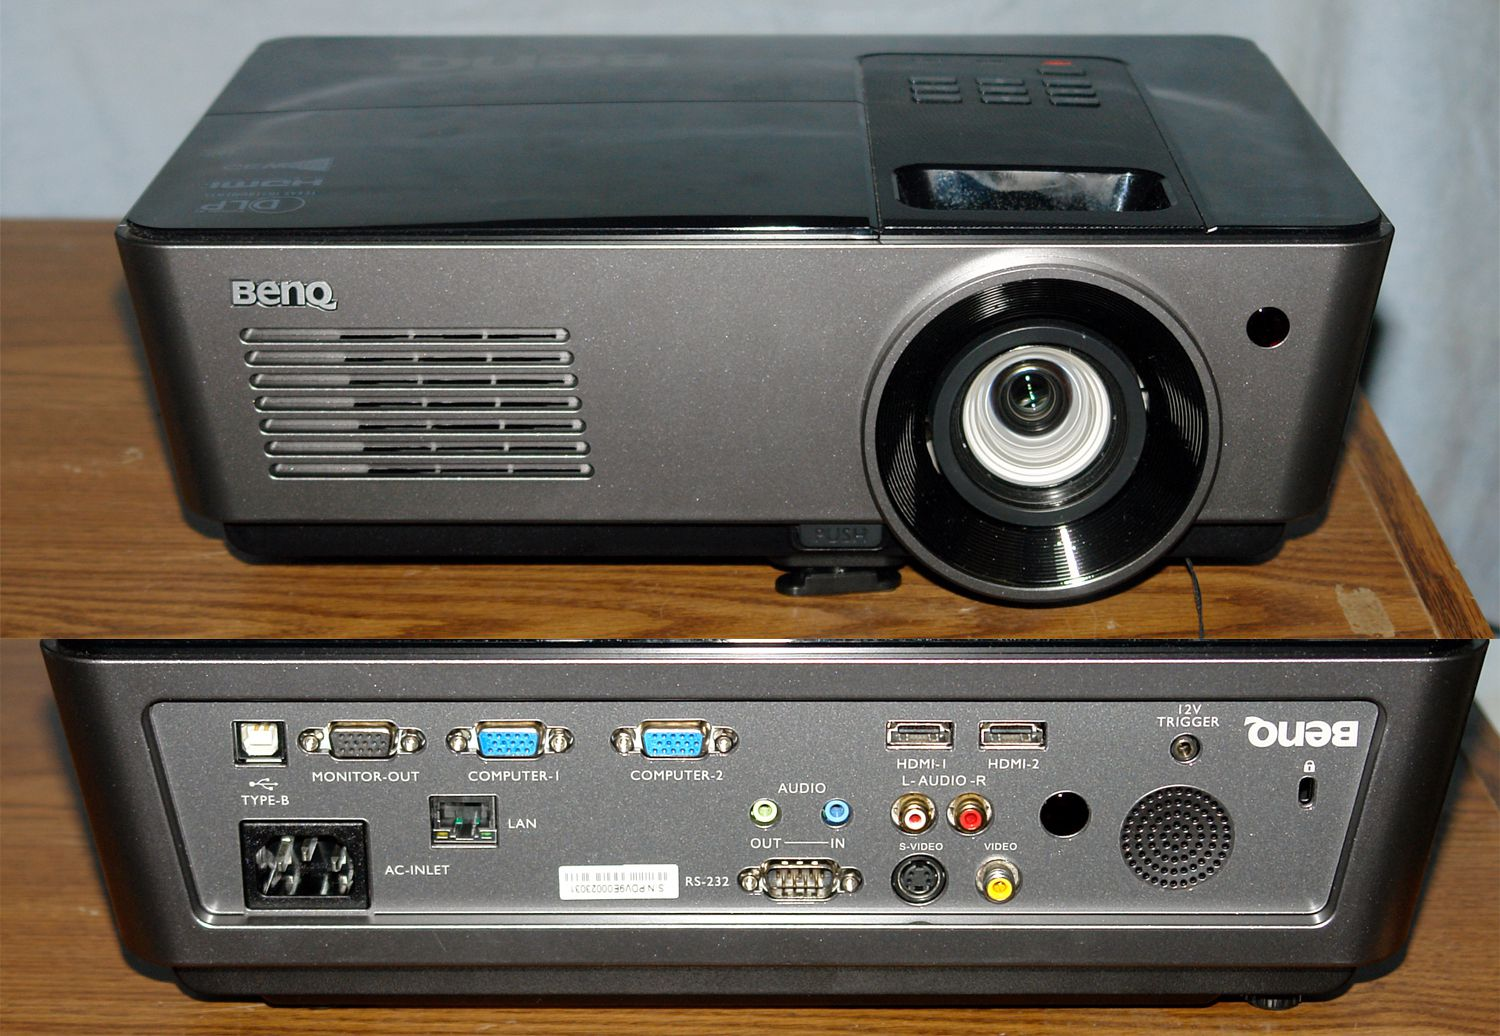 Benq hc1200 3d and srgb dlp video projector review for Projector tv reviews